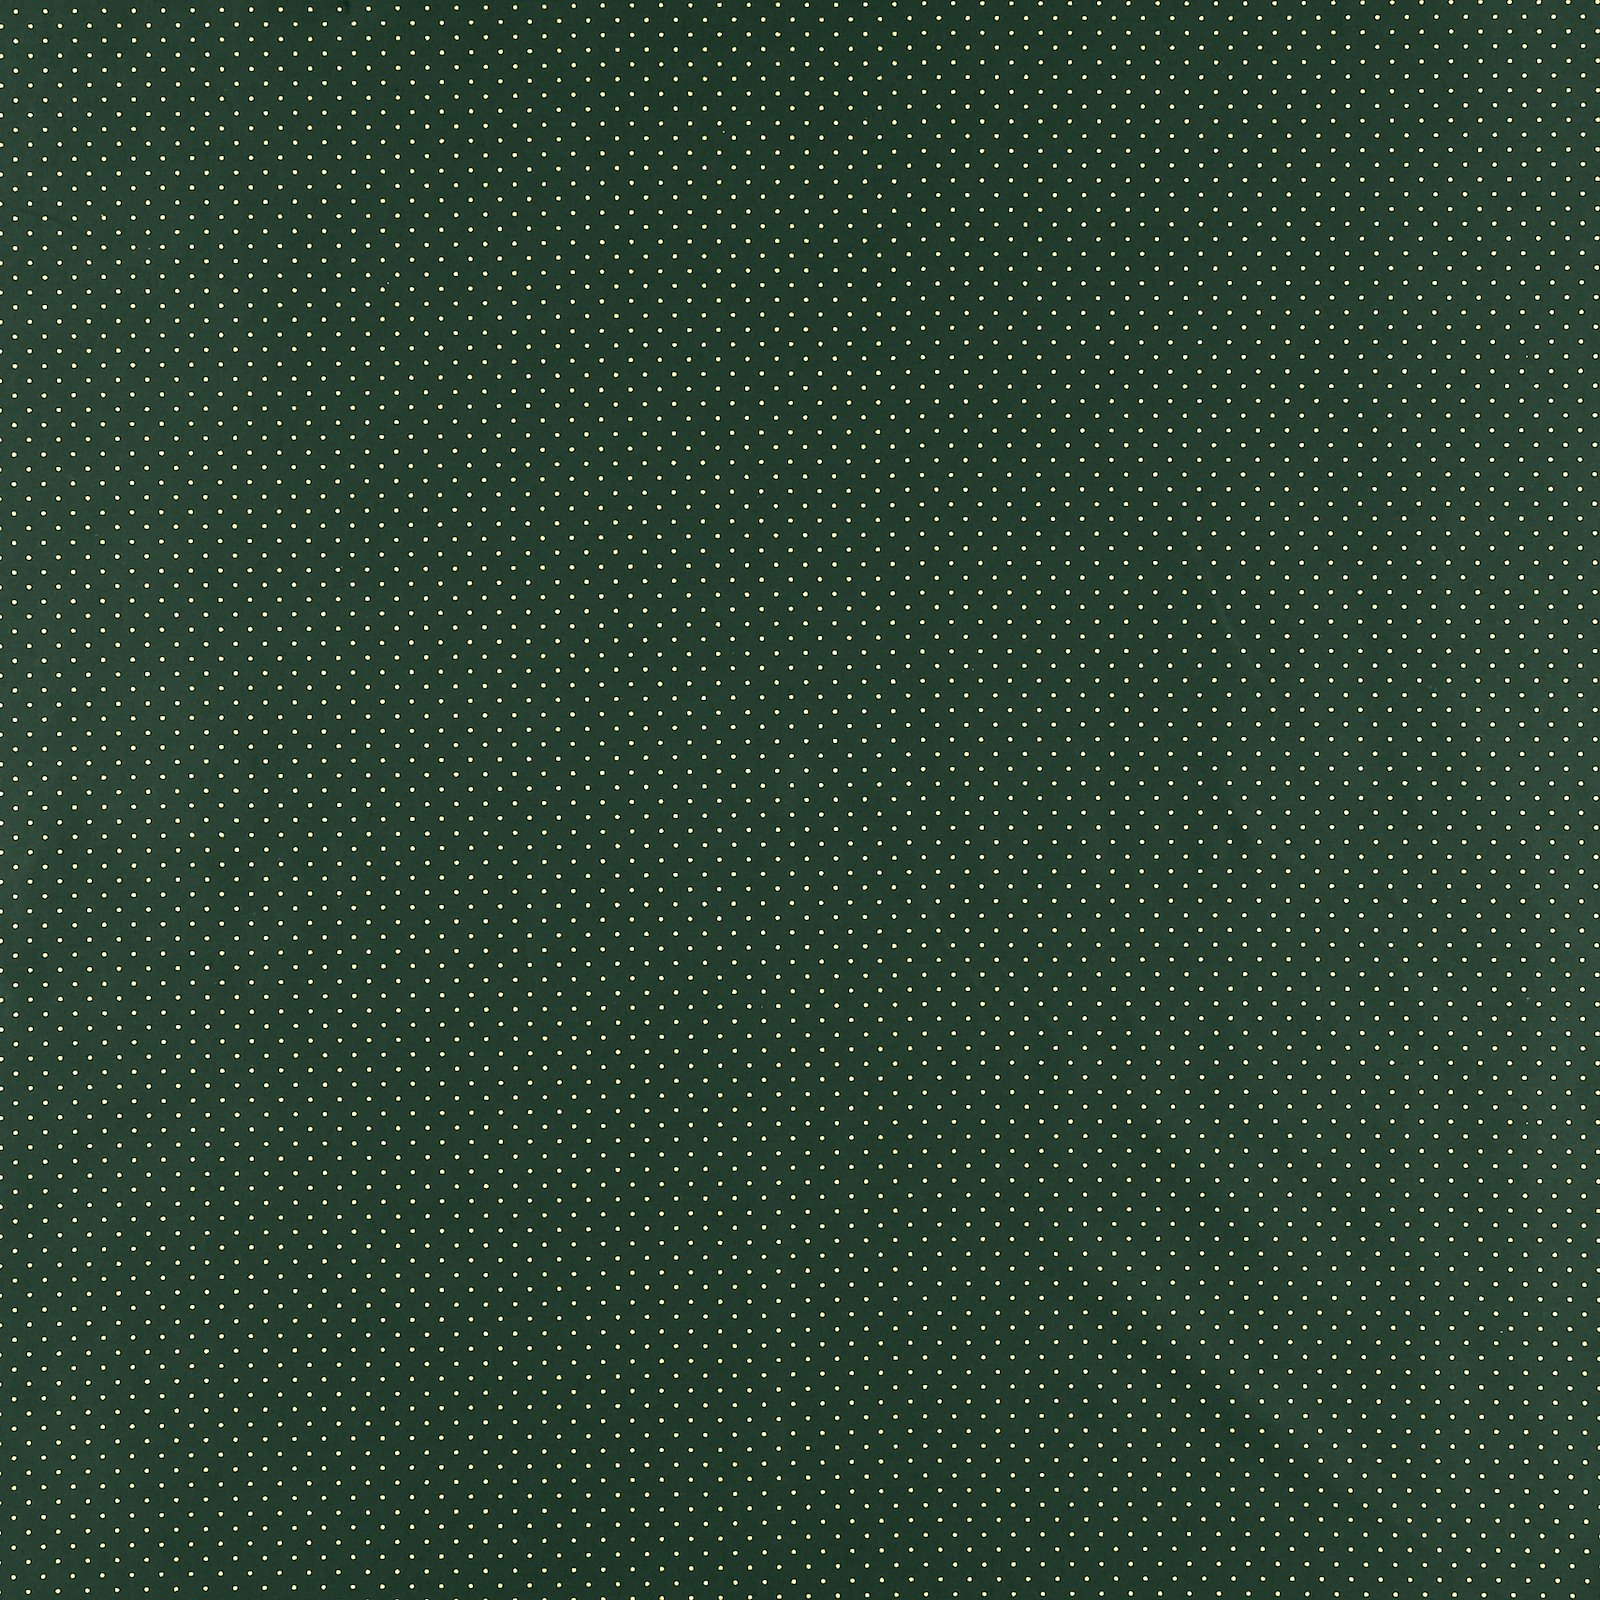 Cotton dark bottle green with gold dots 852326_pack_sp